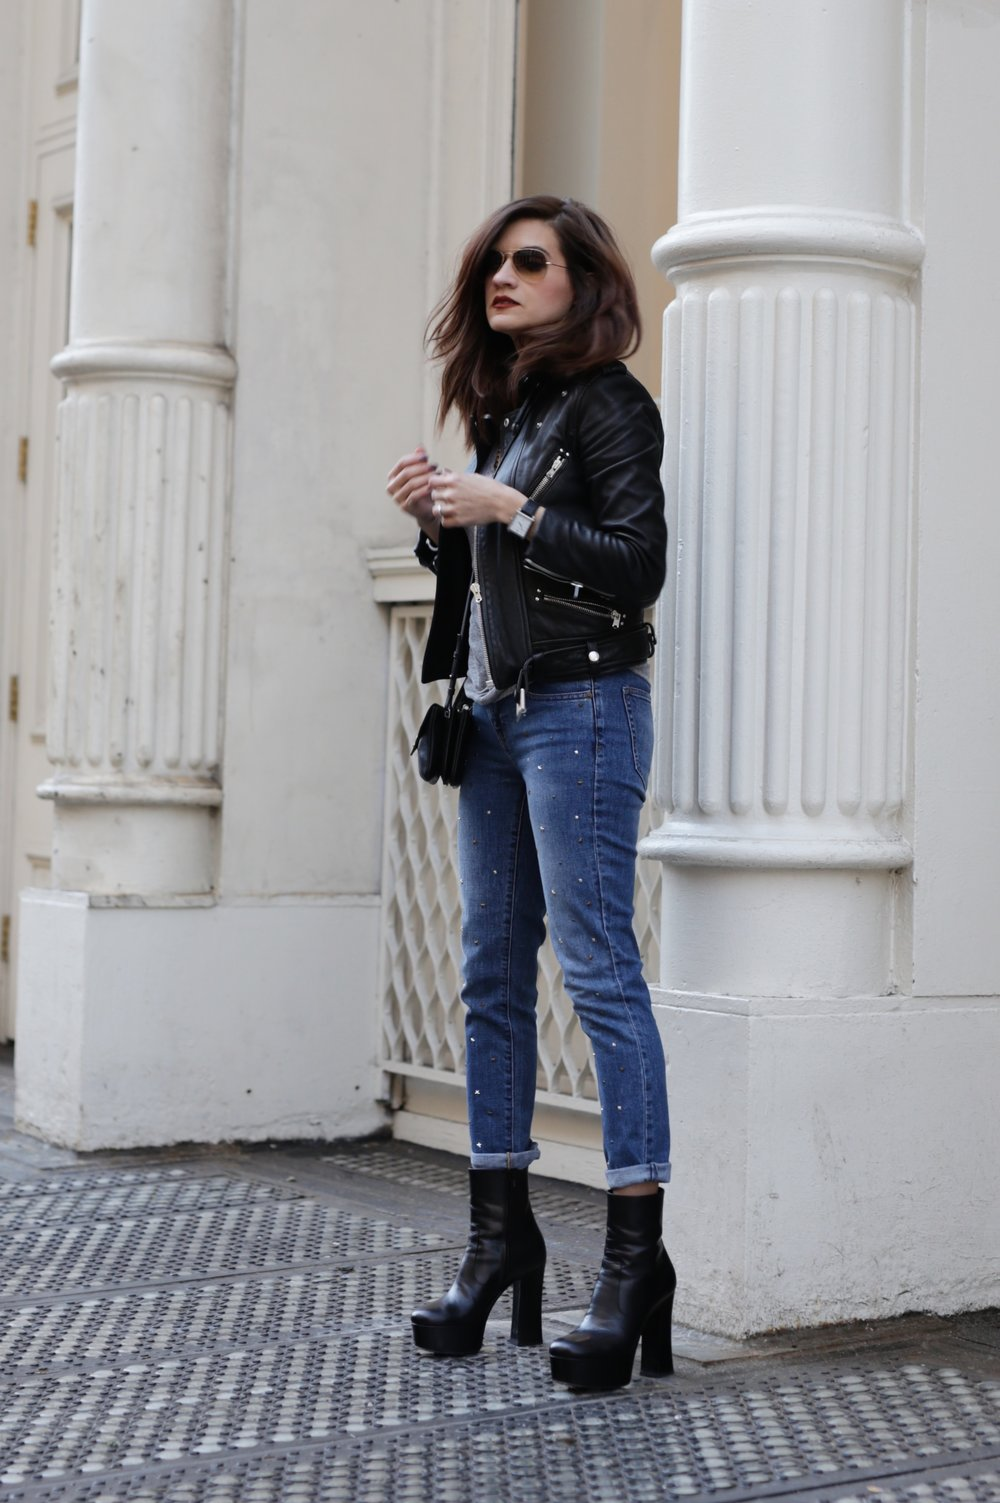 NYC street style - Saint Laurent platform boots, leather moto jacket from The Kooples, YSL cross body bag and Gap studded jeans_6961.JPG